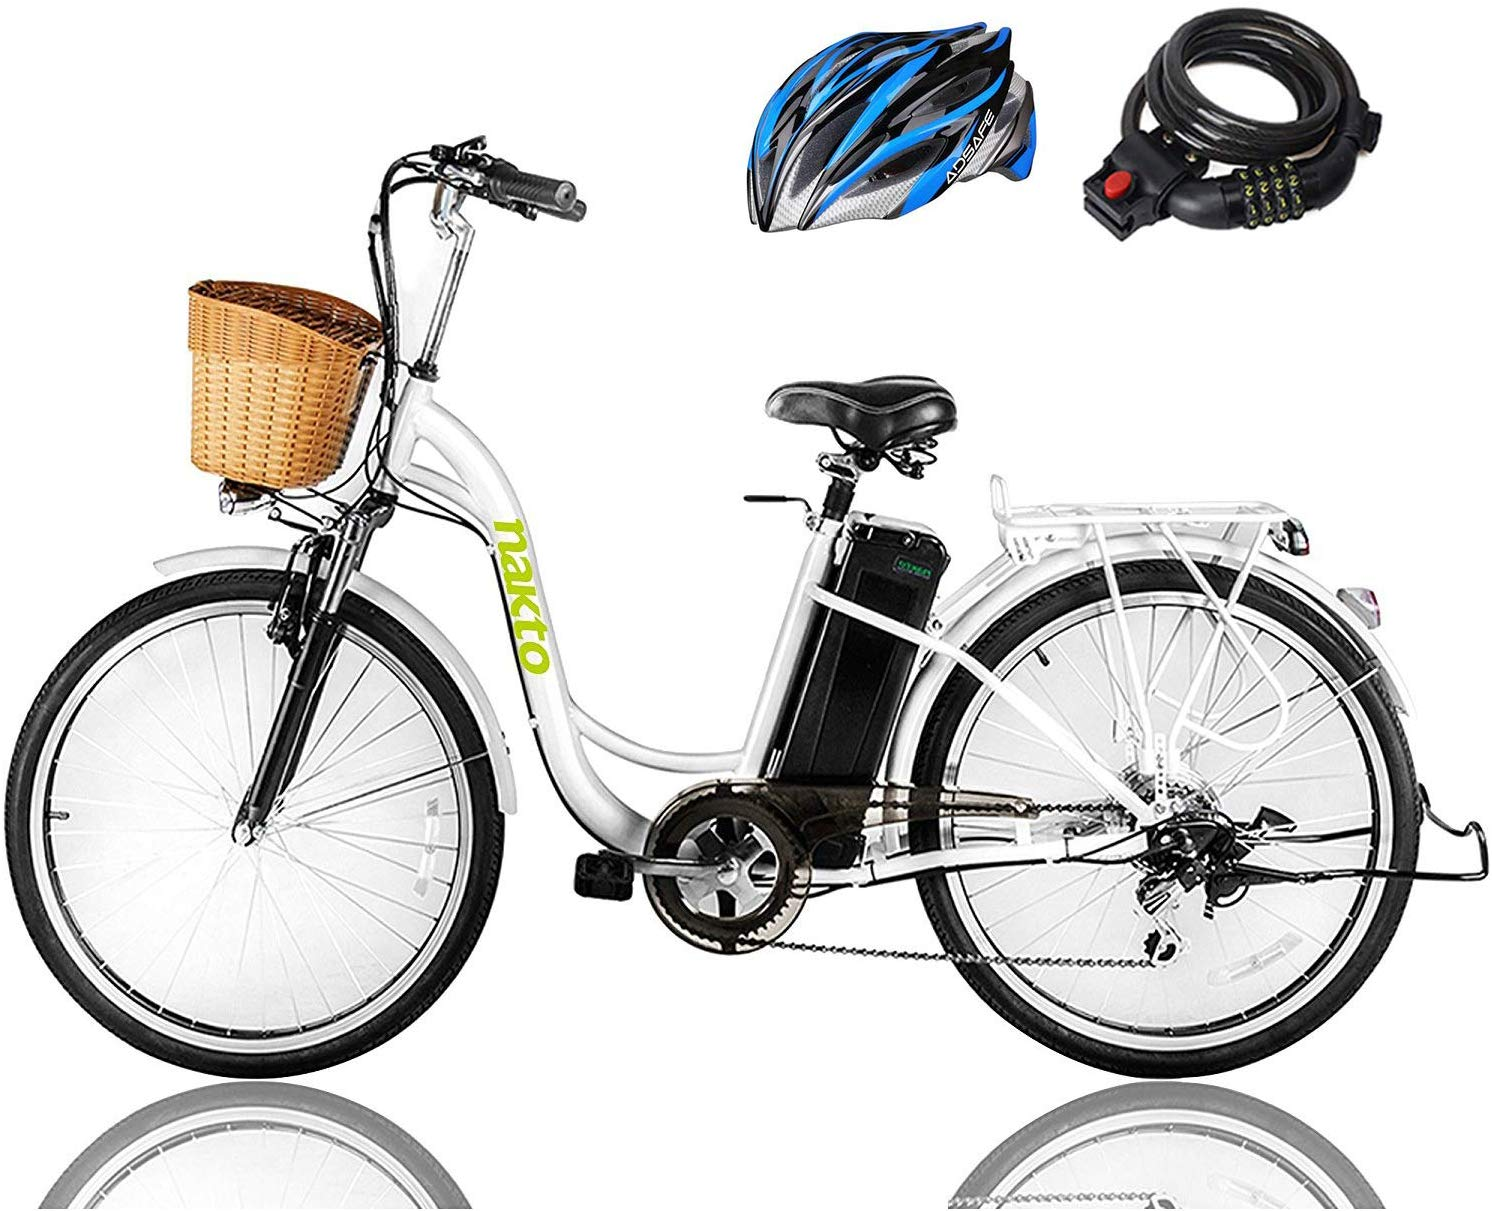 Nakto Electric Bike Black Friday Cyber Monday 2019